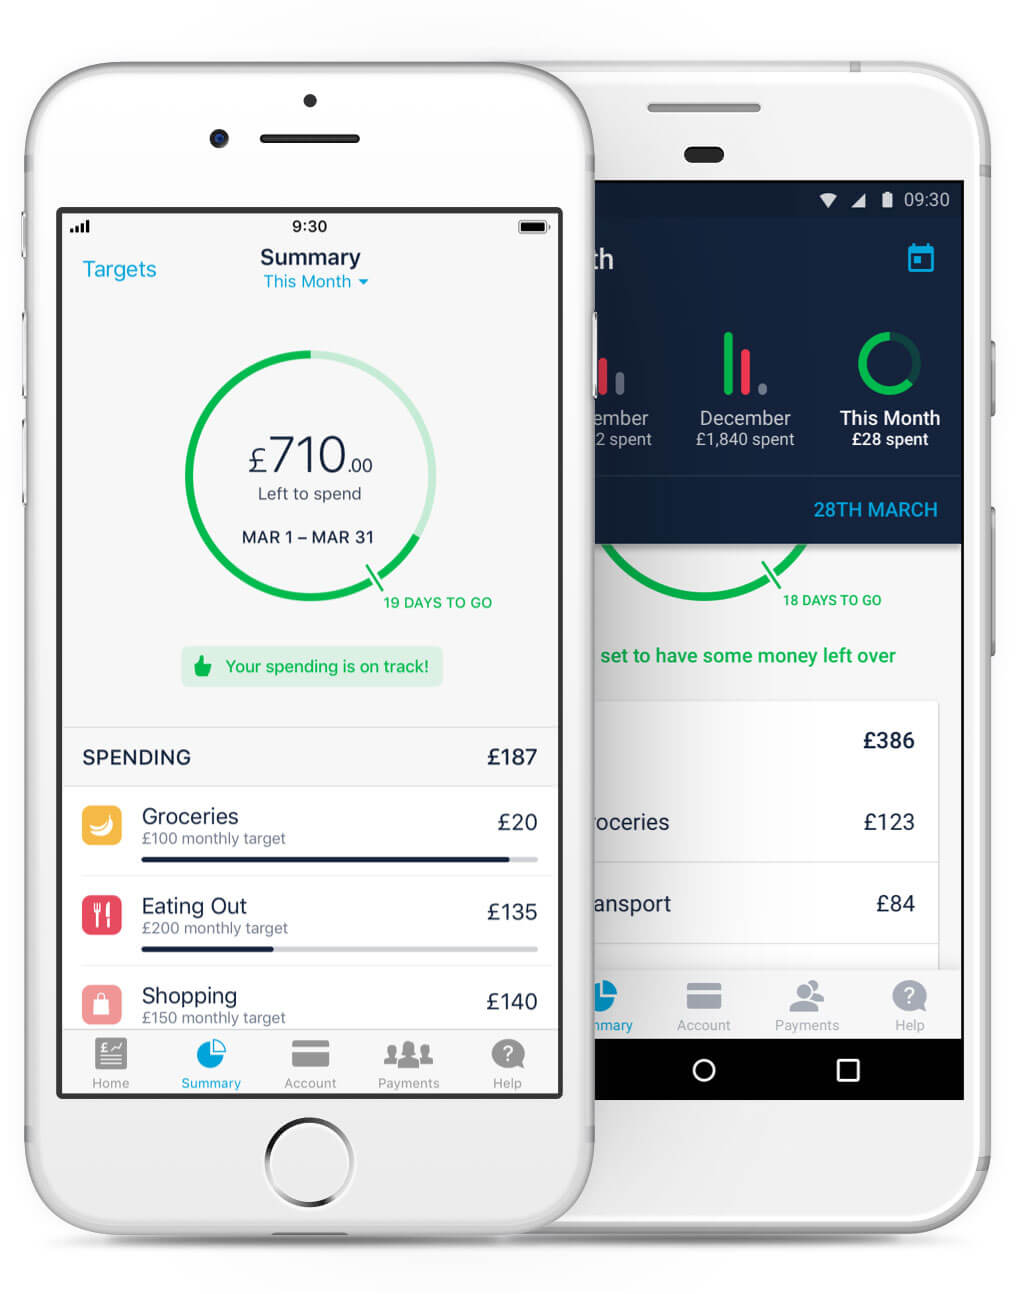 Monzo has become increasingly popular since it first launched in 2015 as a digital mobile-only bank.